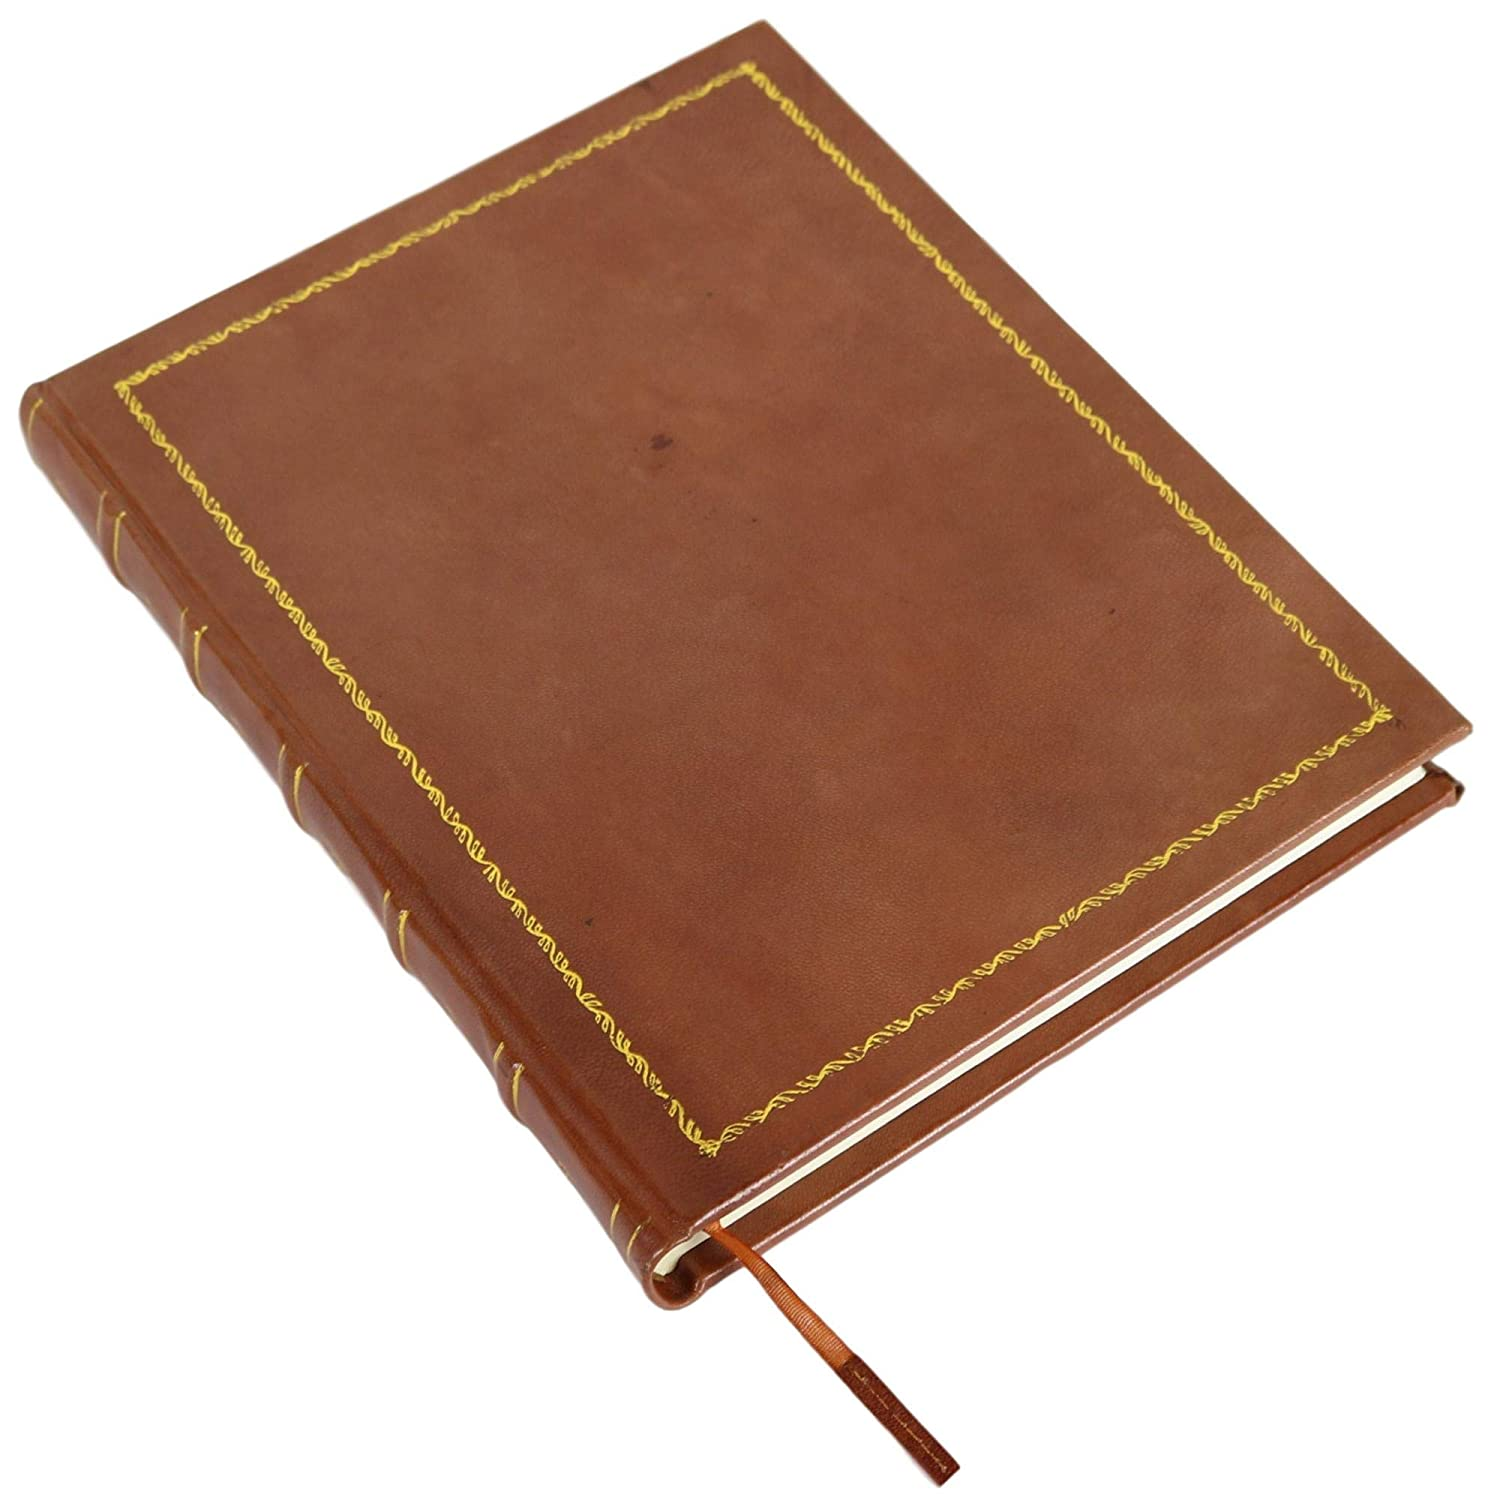 Brown Rustic Journal Vintage Notebook Gilt Hardcover Book Blank Unlined 10 X 13 Inches